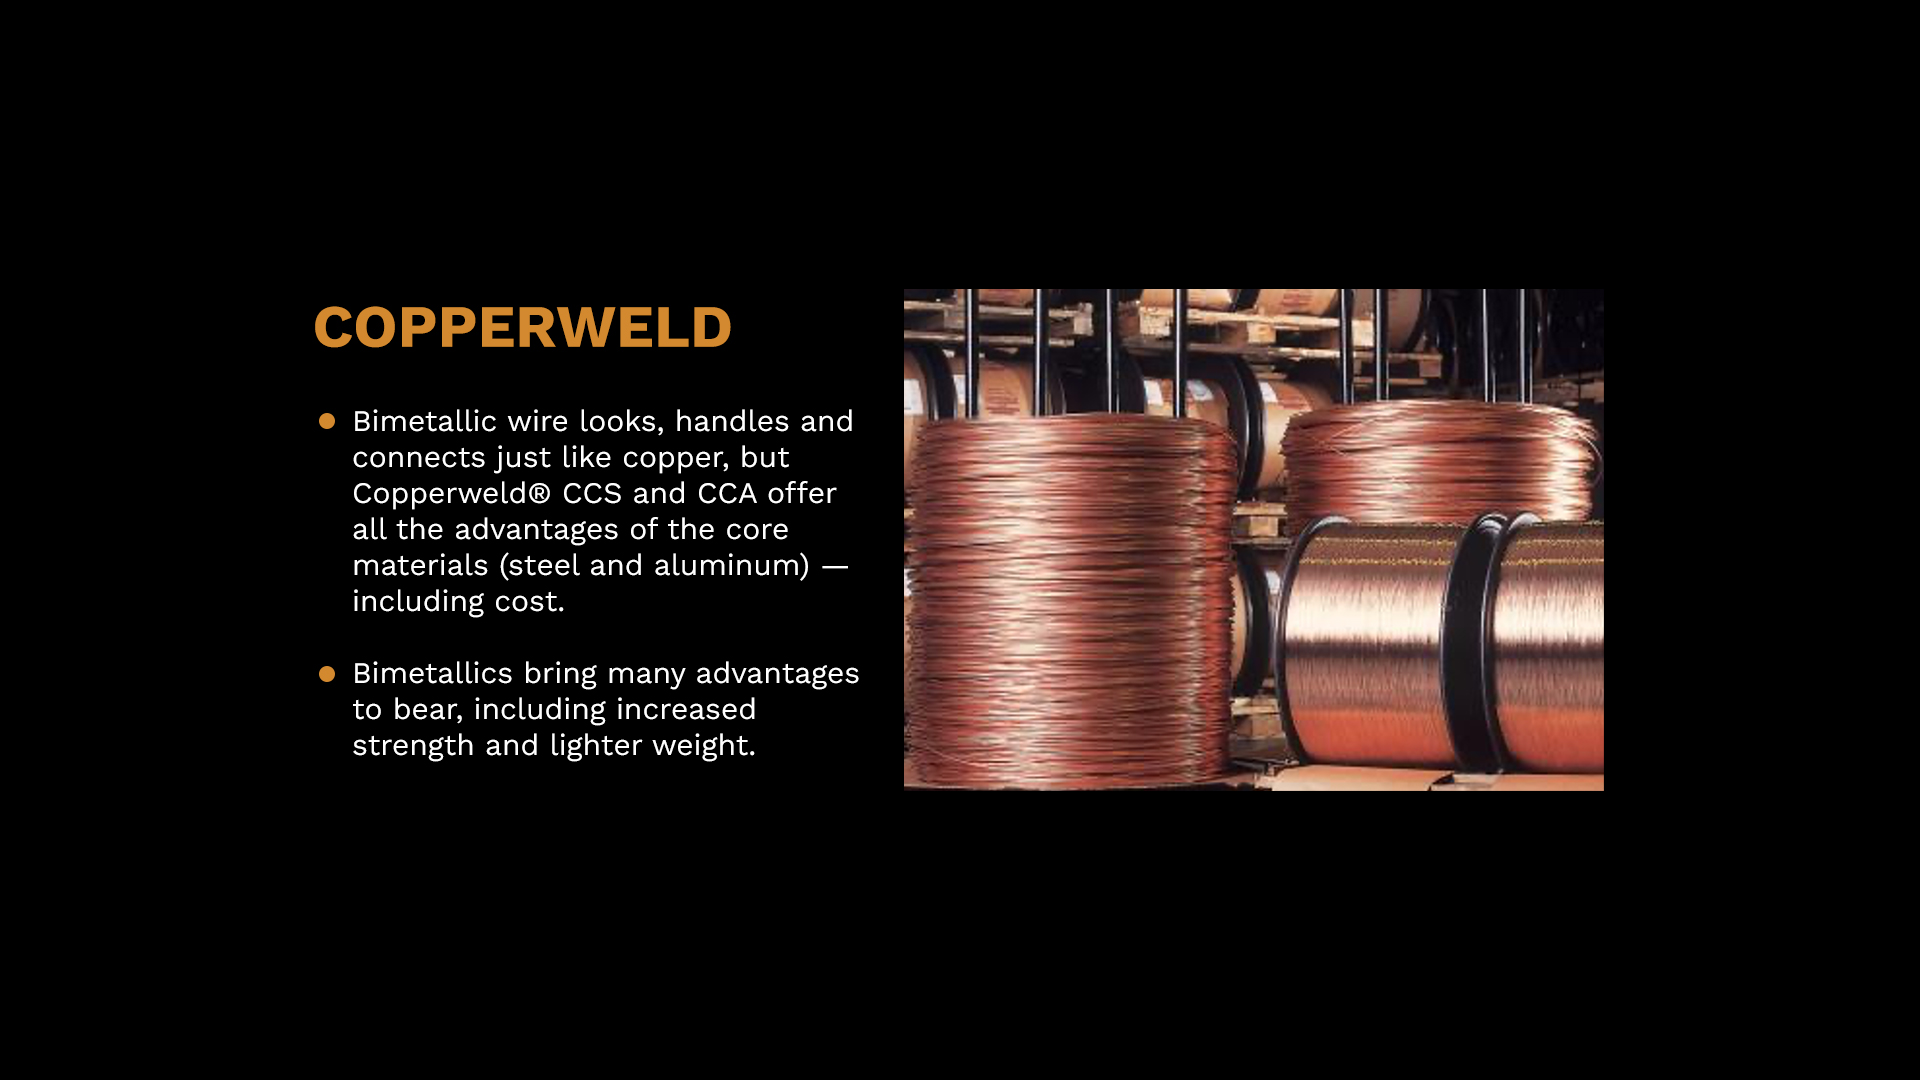 Copperweld